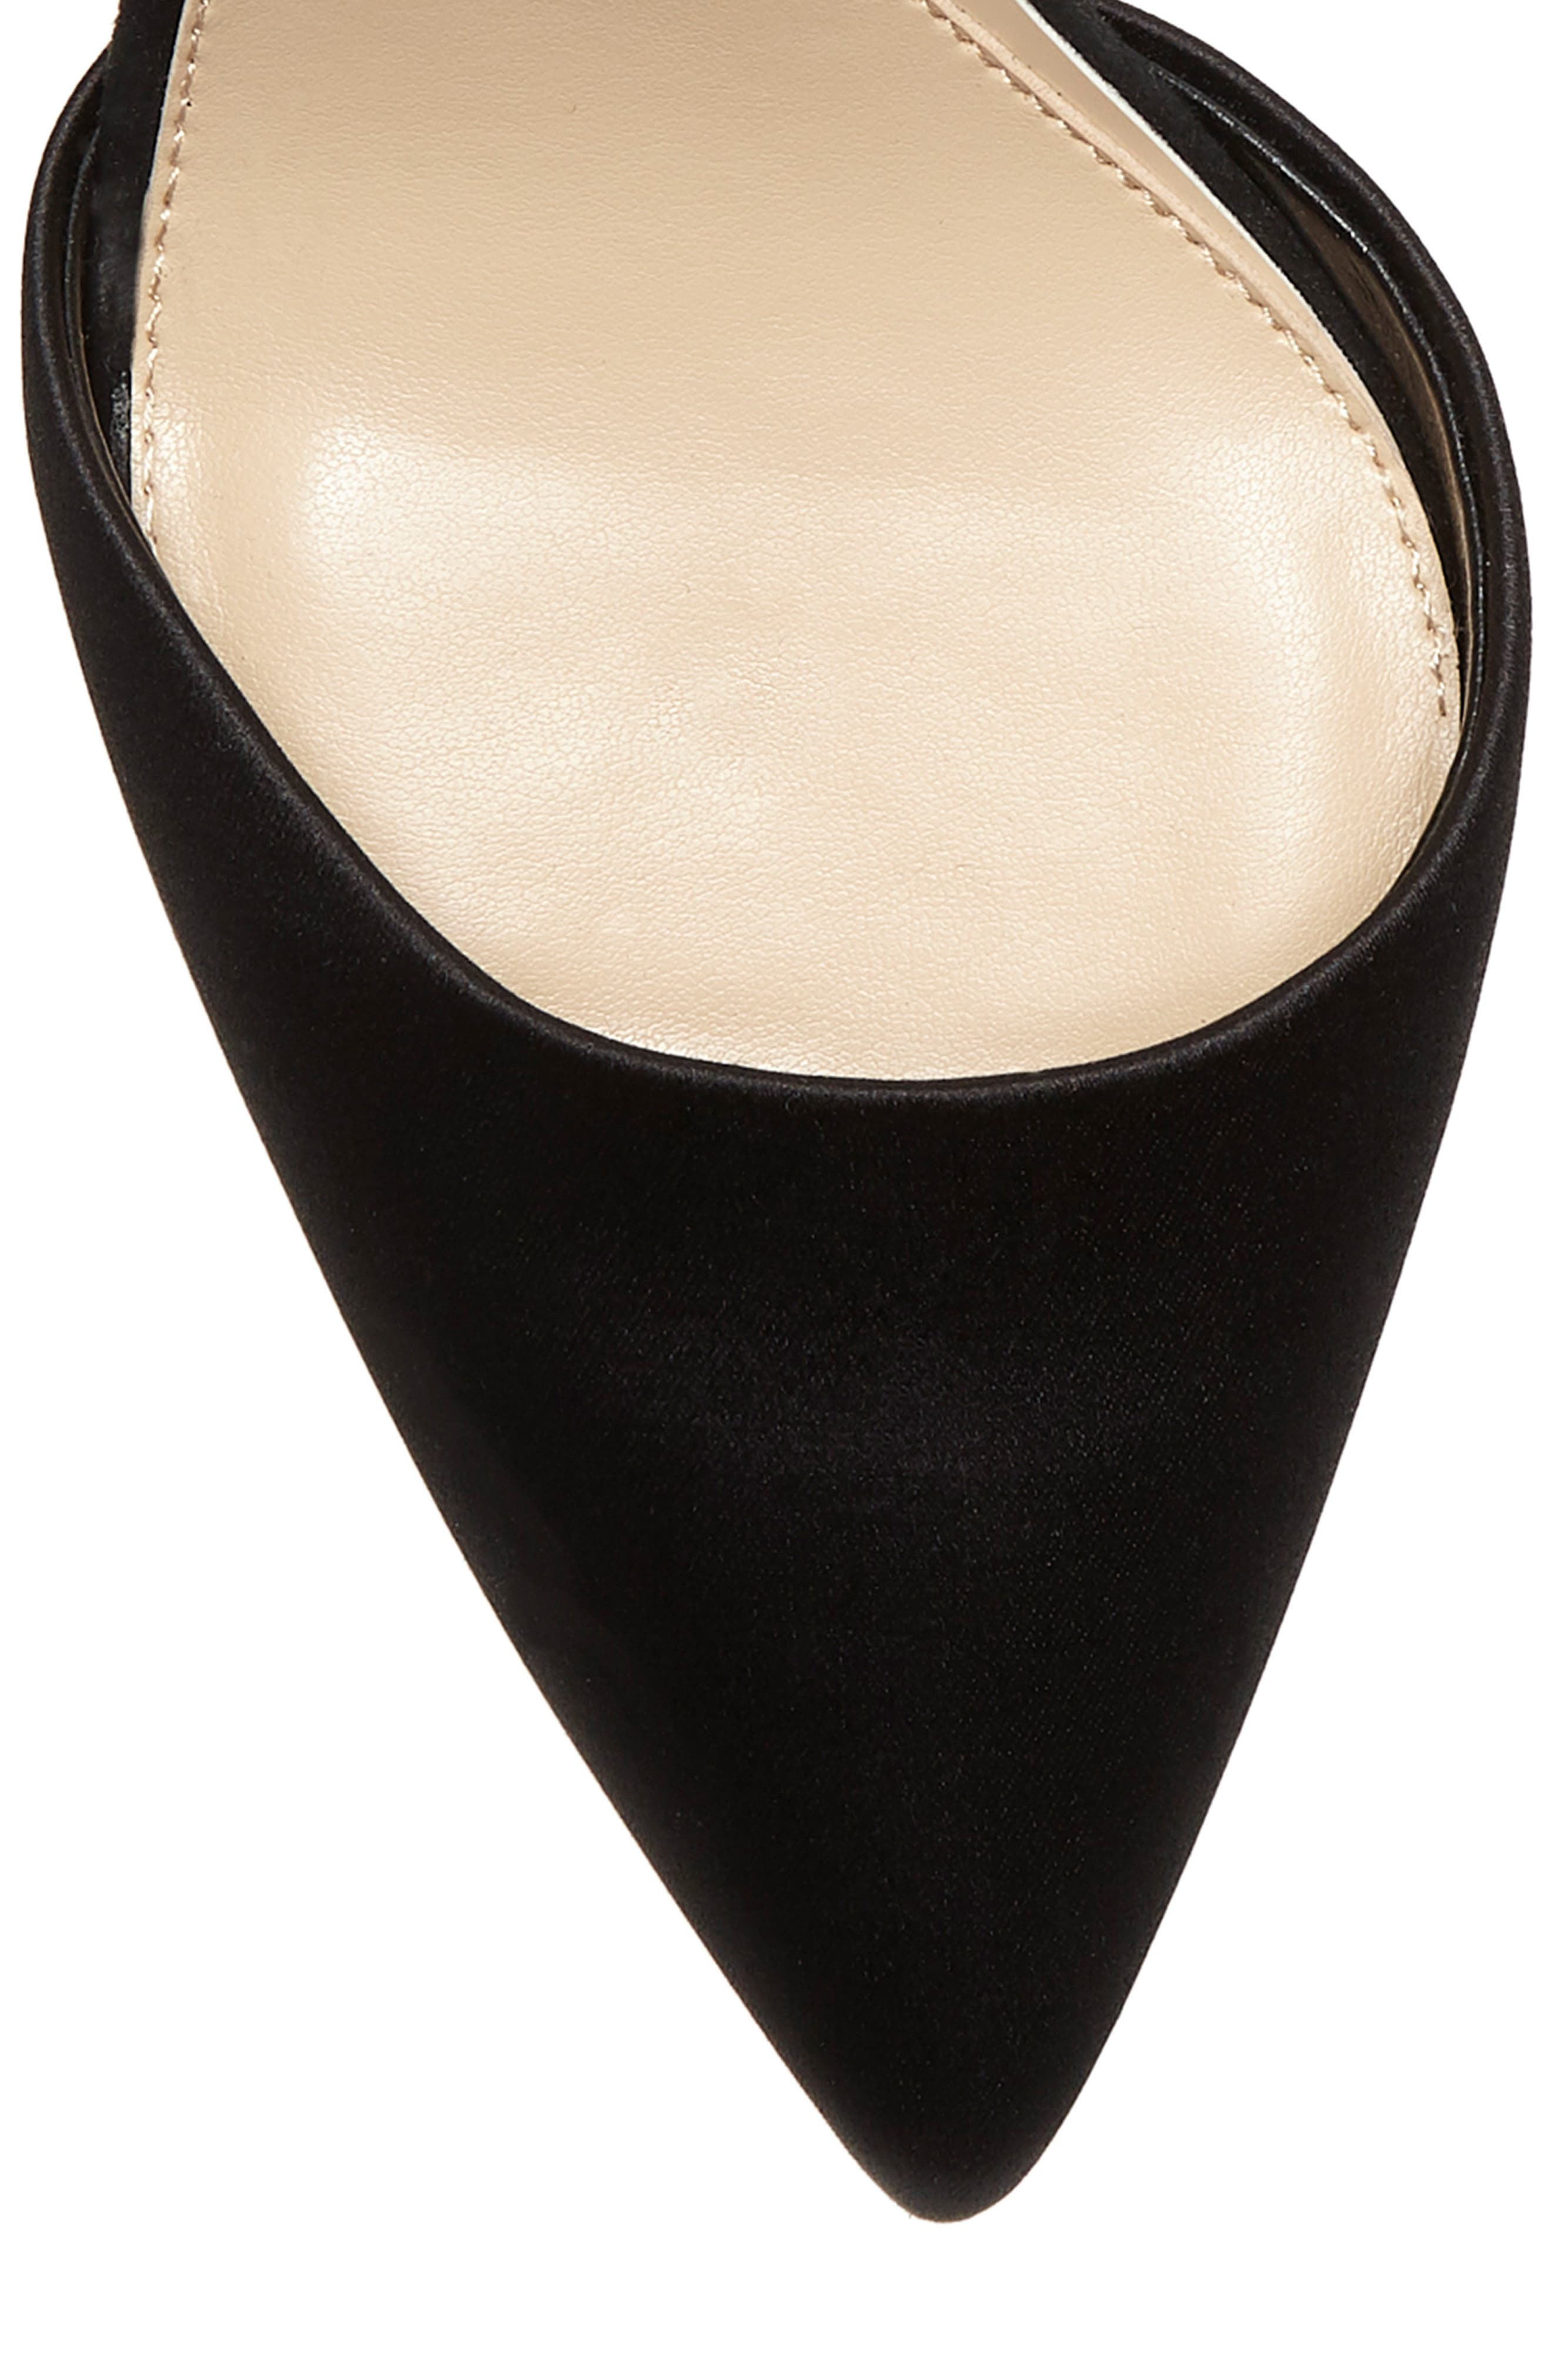 IMAGINE BY VINCE CAMUTO, Glora Pointy Toe Pump, Alternate thumbnail 8, color, BLACK SATIN